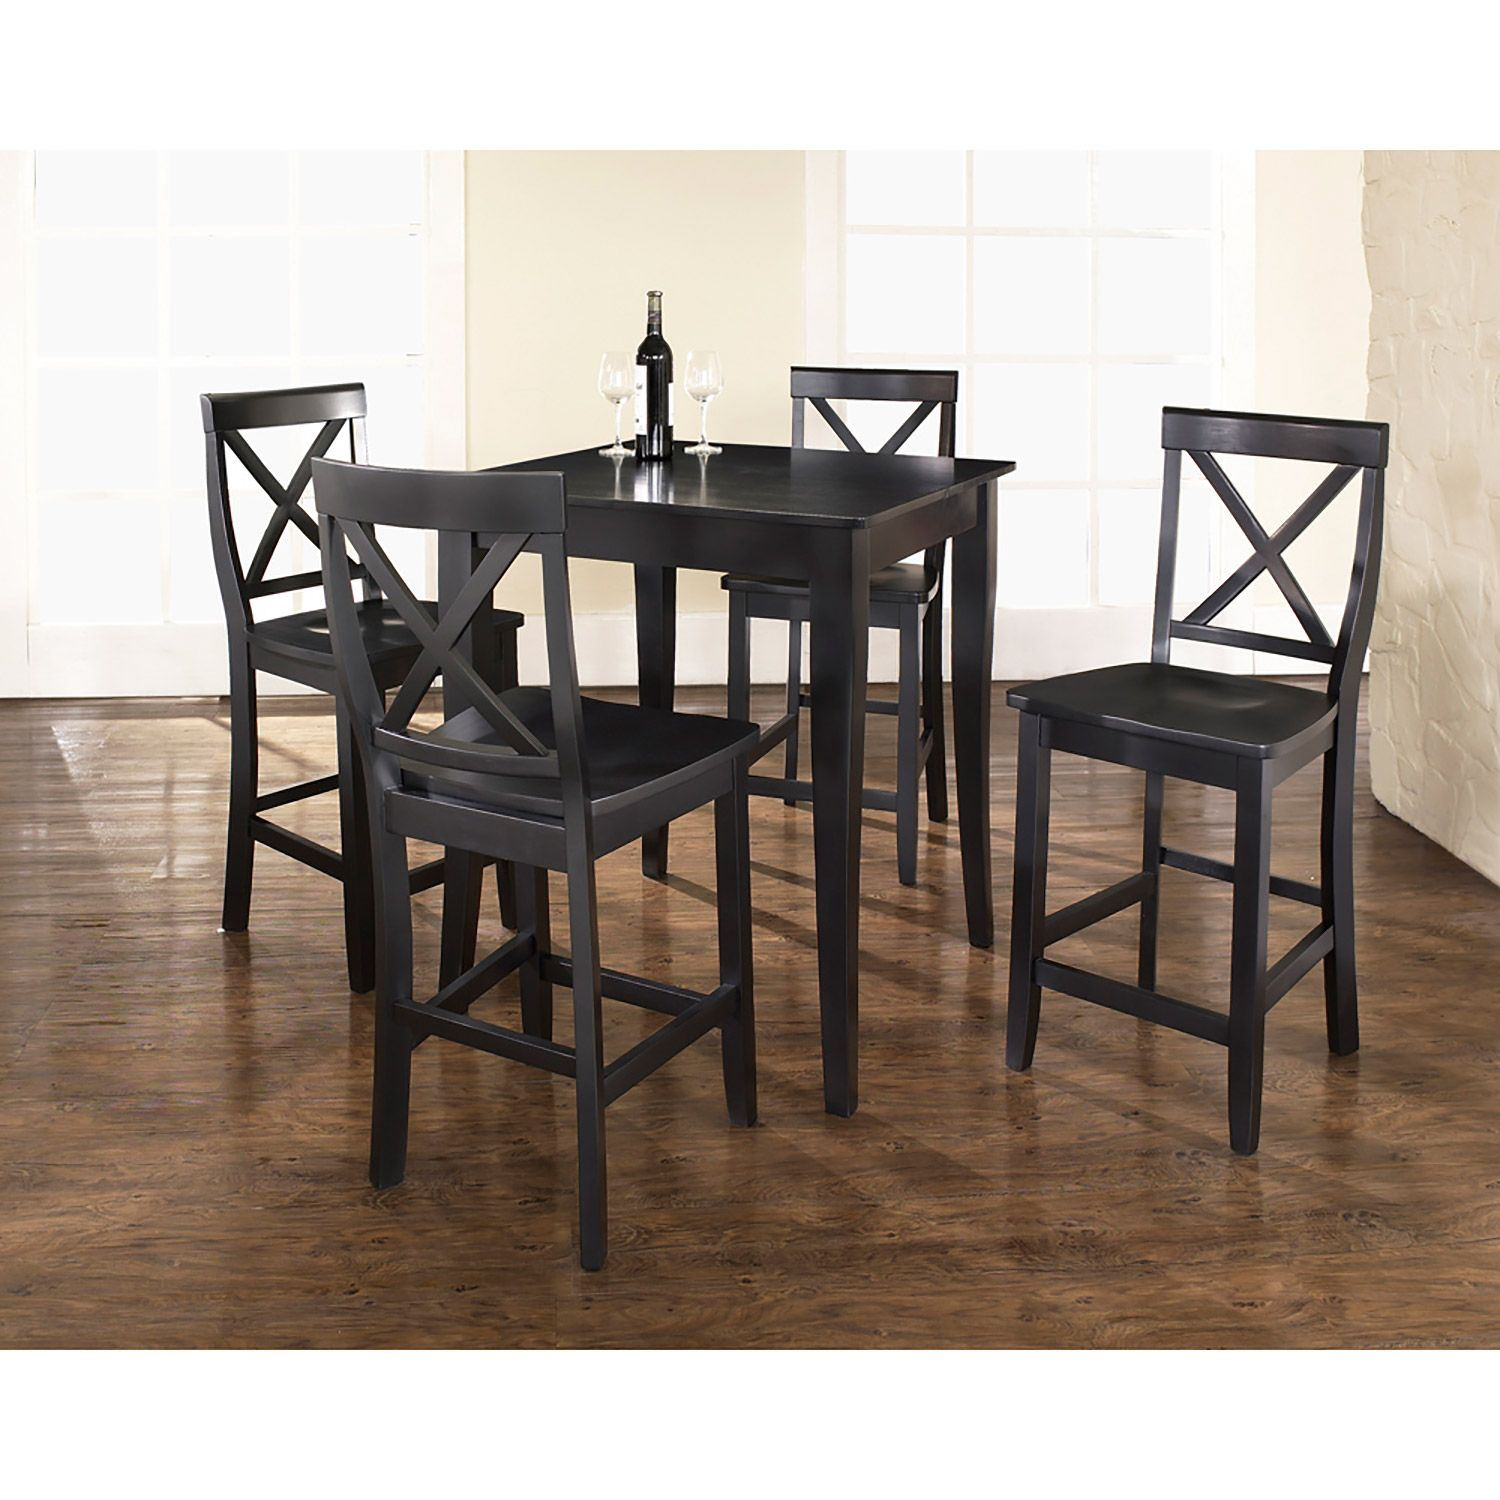 Dining Sets Black: 5-Piece Pub Dining Set, Black *D